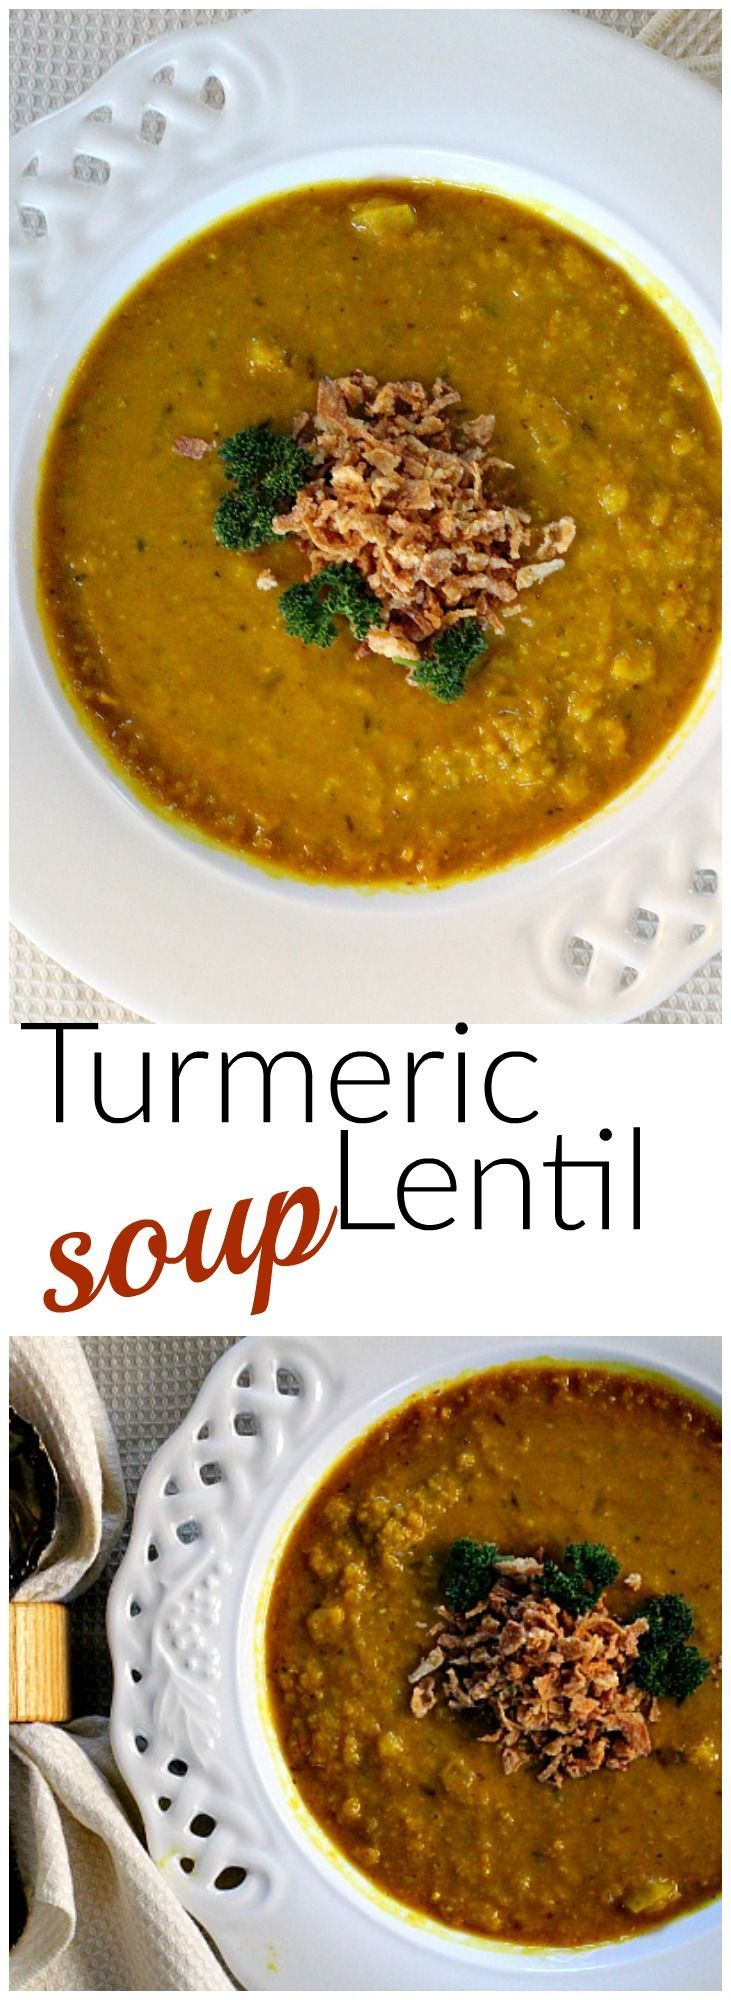 826 best detox recipes images on pinterest clean eating meals healthy turmeric and lentil soup recipe easy and delicious dinner recipe idea with carrots forumfinder Gallery